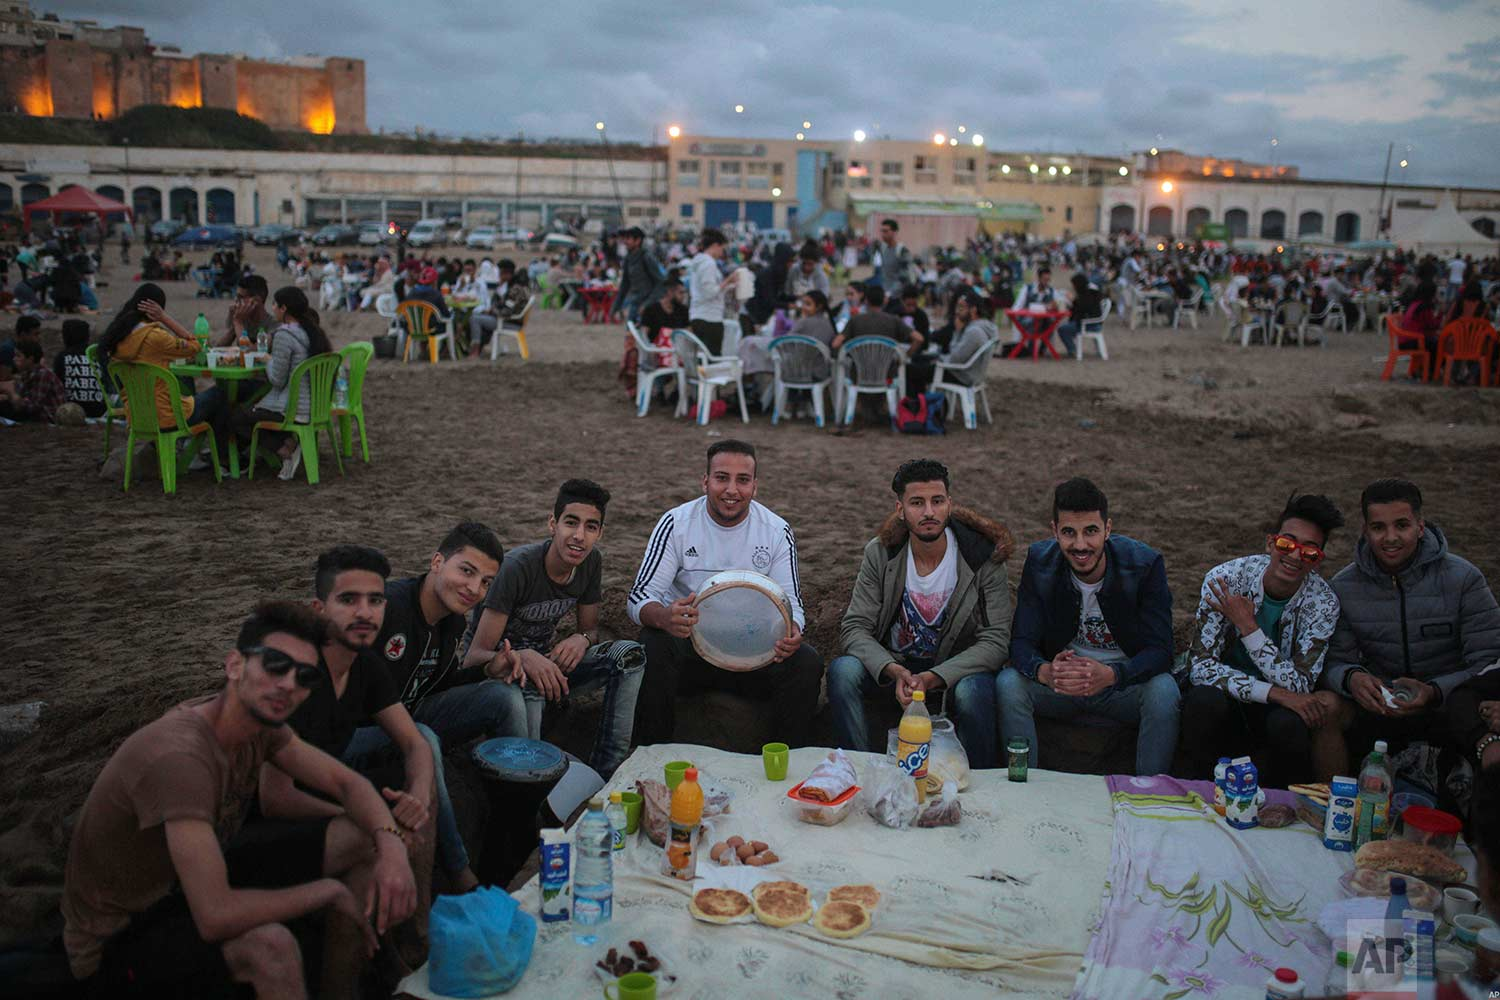 Young men pose for a photo as they gather to break their fast on the beach in the holy month of Ramadan, in Rabat, Morocco, Saturday, June 9, 2018. (AP Photo/Mosa'ab Elshamy)